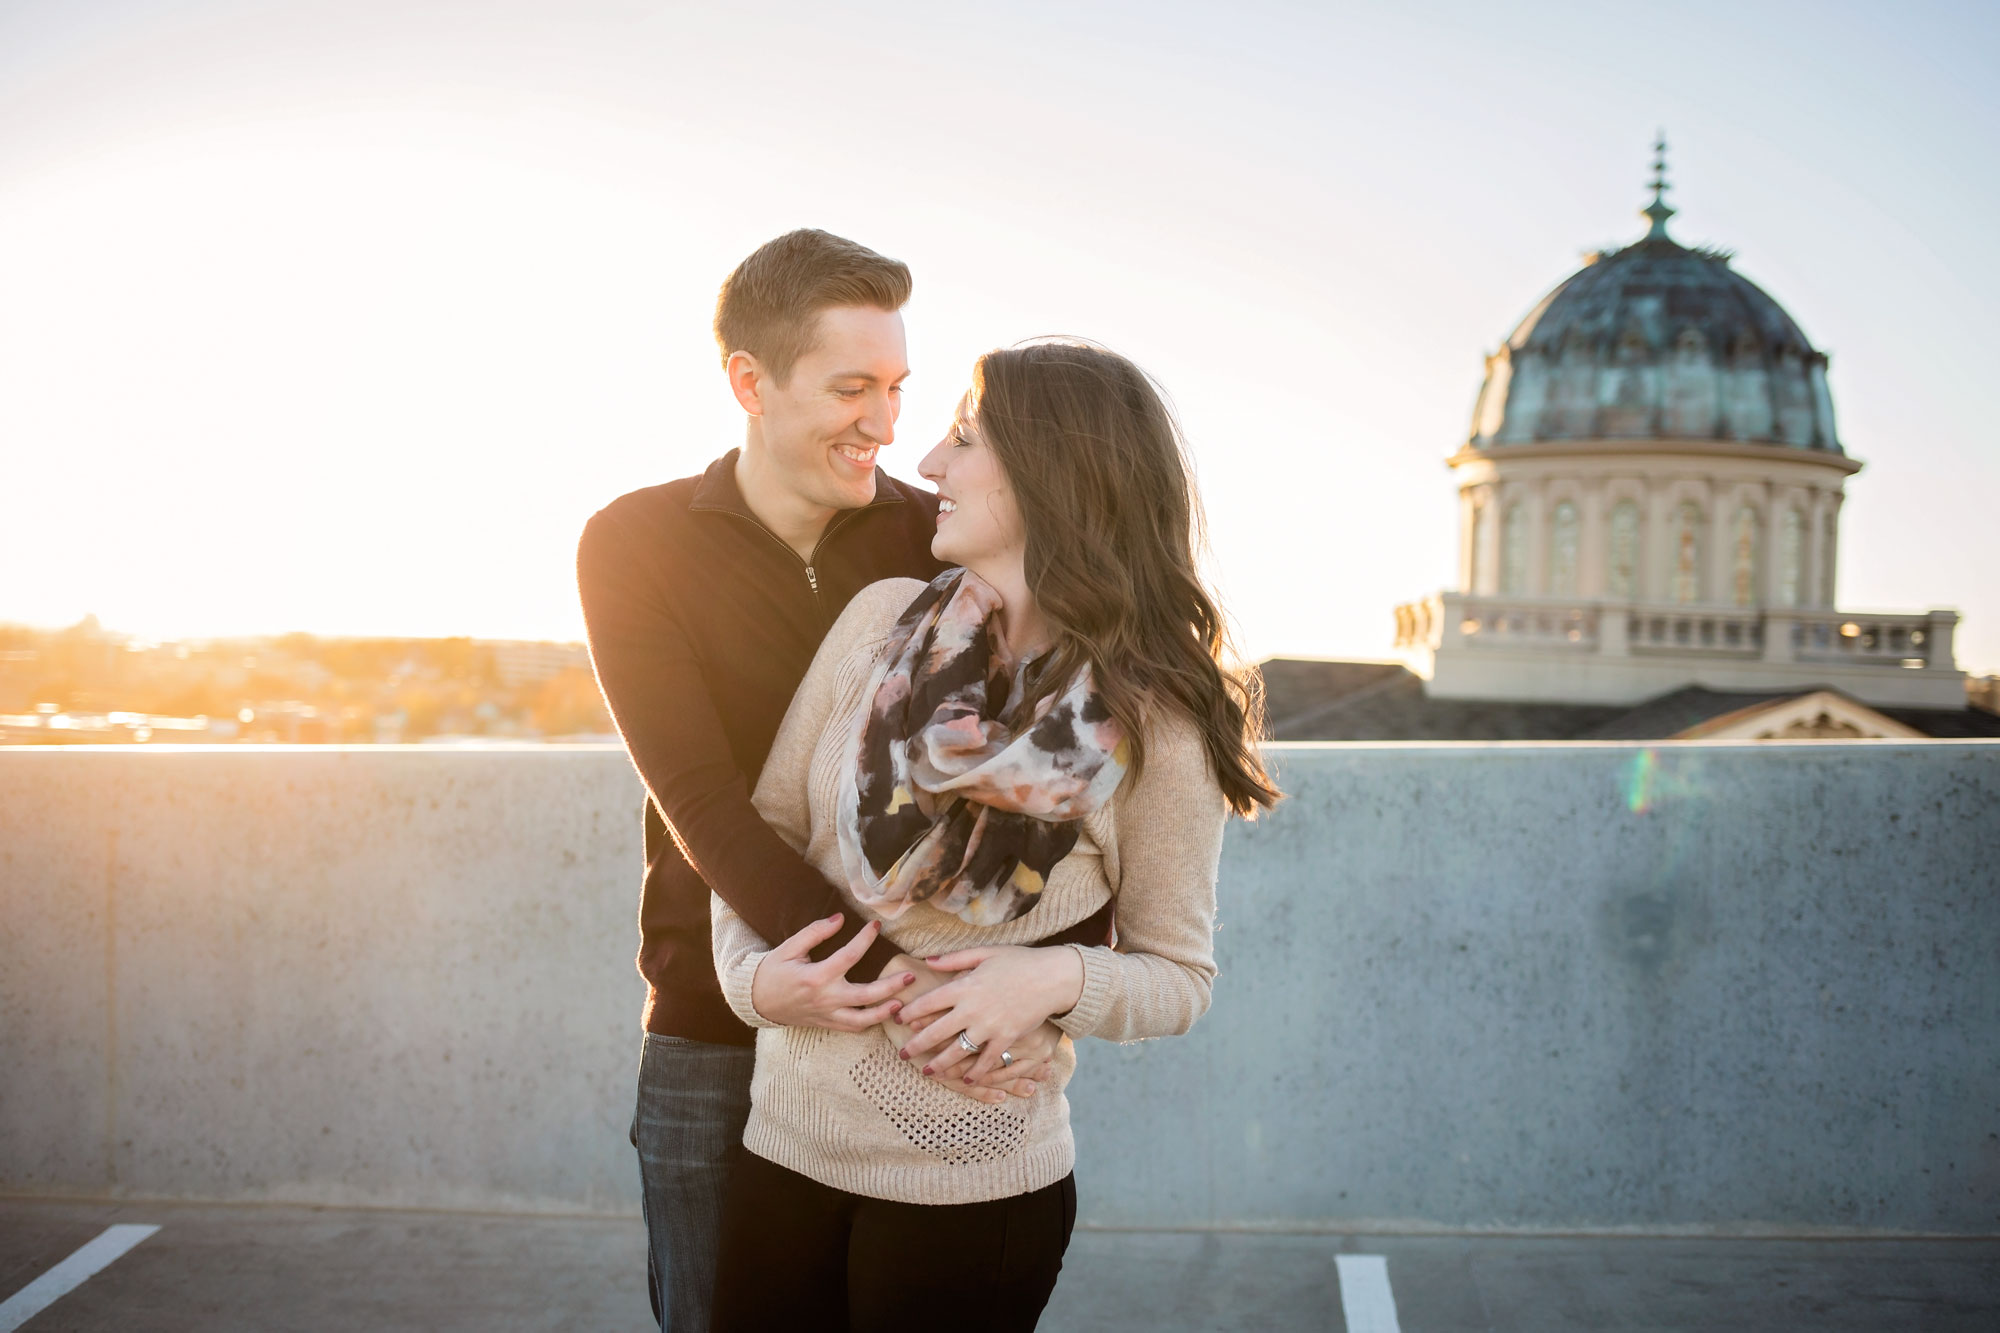 Man wearing dark brown sweater wrapping his arms around woman wearing light brown sweater on top of a parking garage in Oklahoma City, Oklahoma by Amanda Lynn.